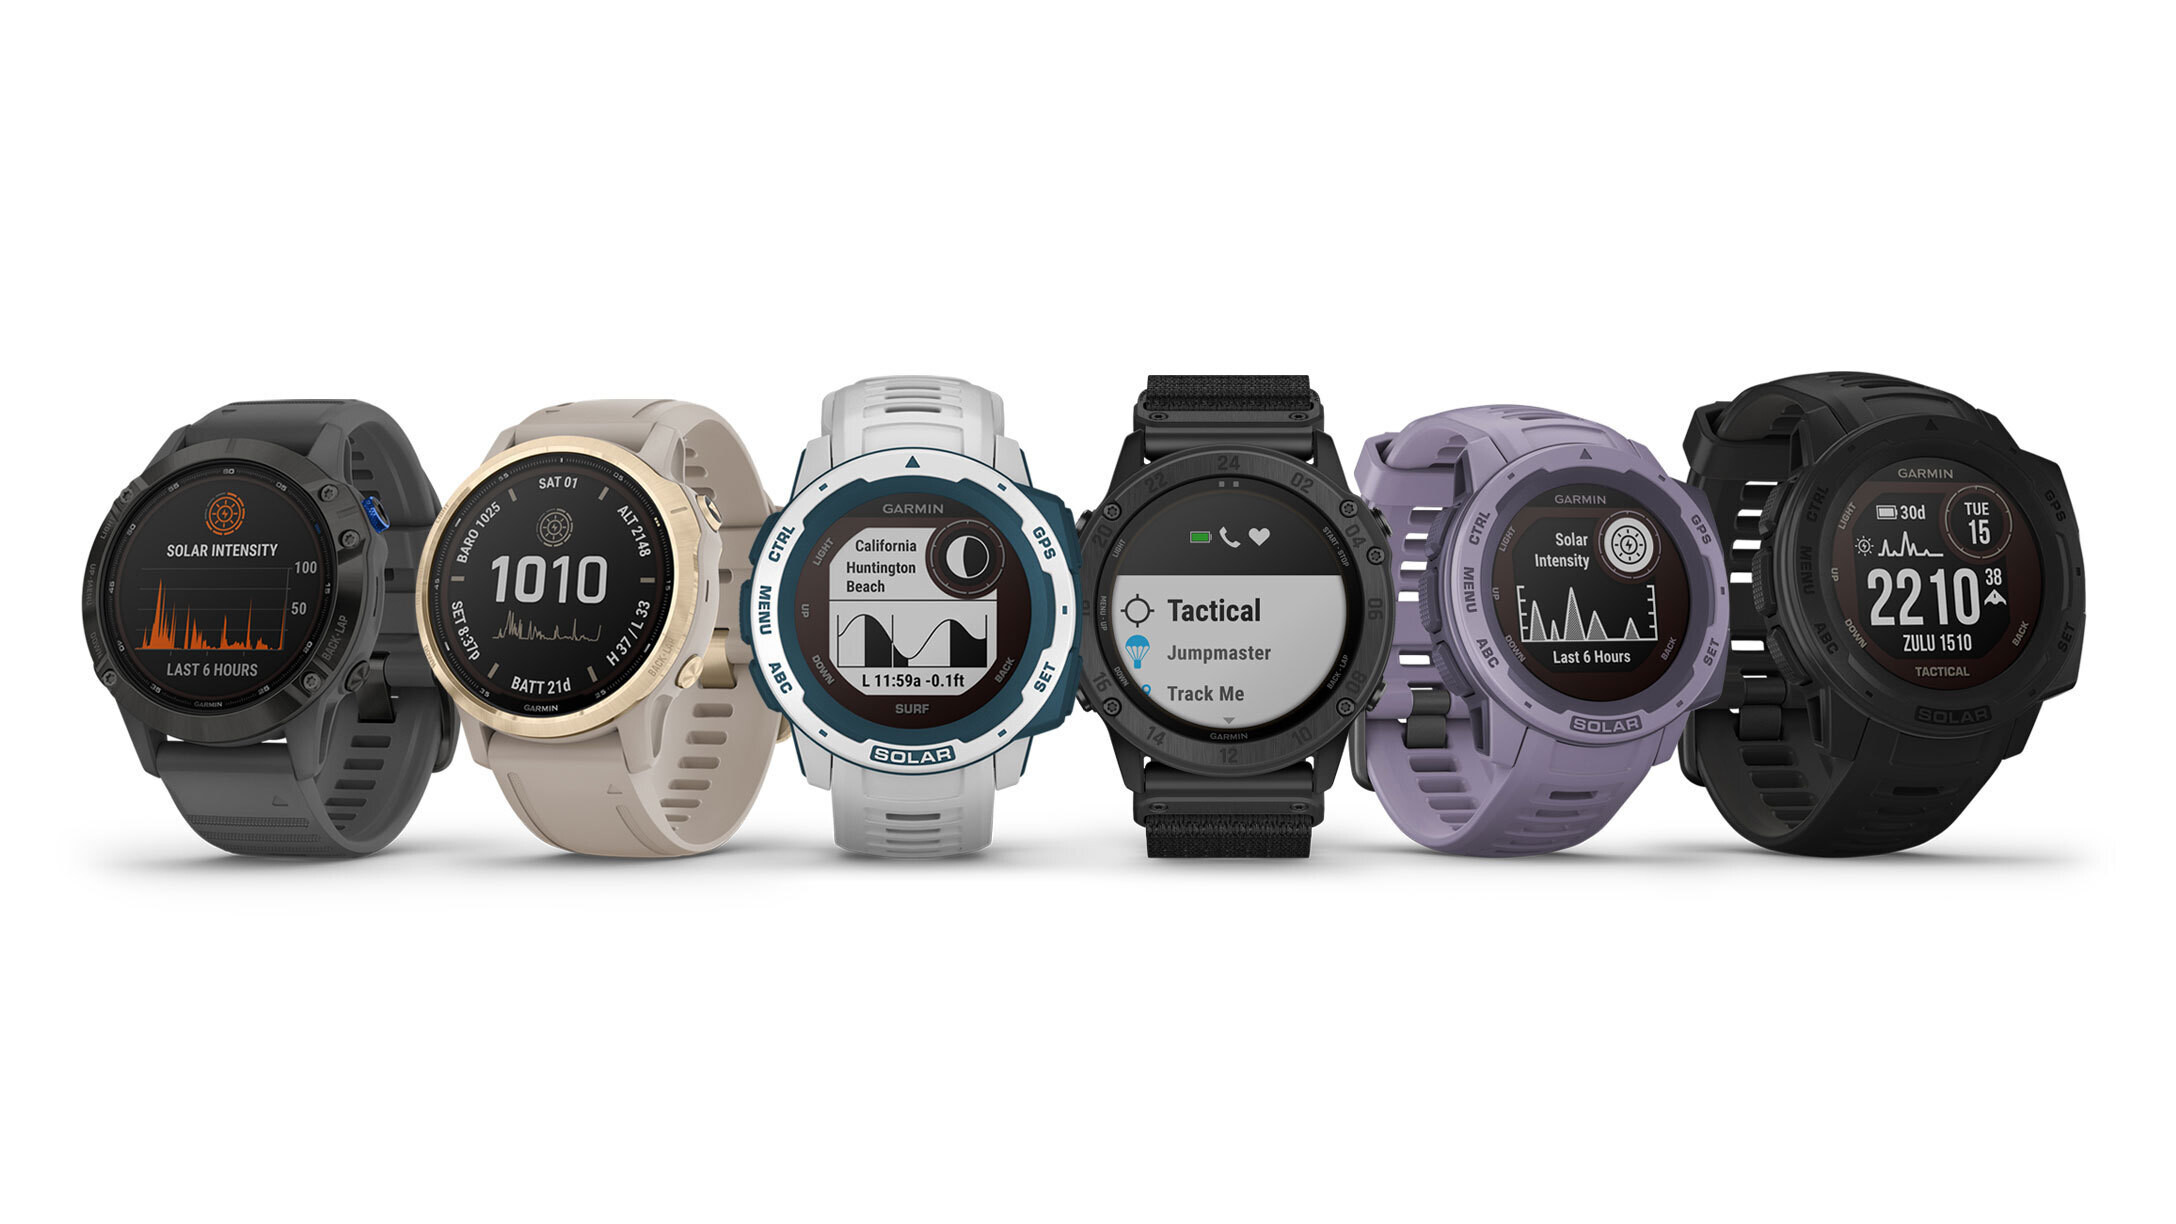 Garmin launches new, old solar-powered smartwatches